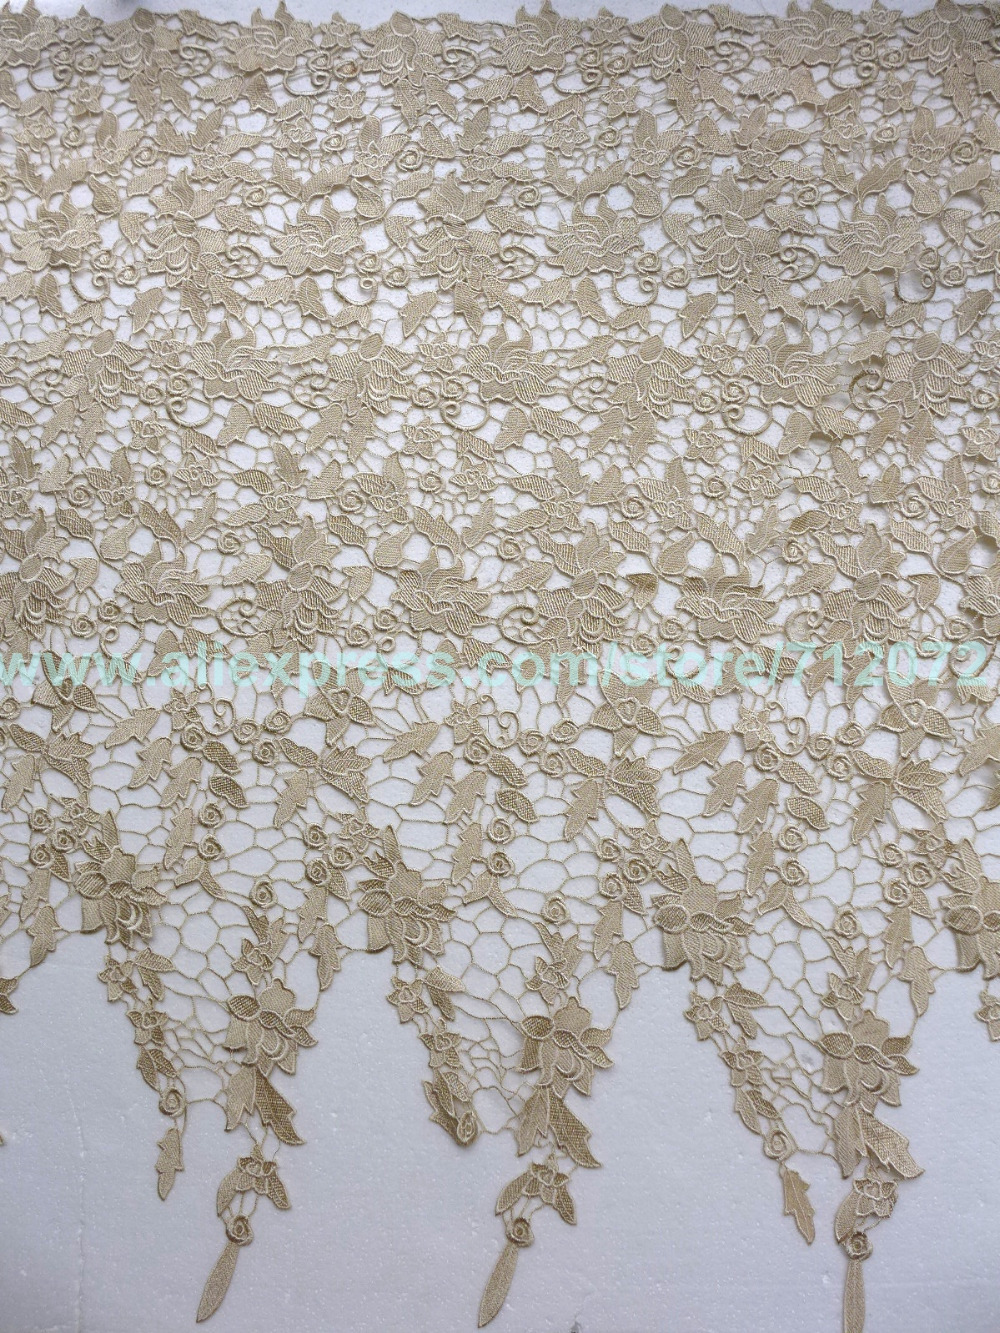 Buy new 39 39 39 beige polyester embroidered for Wedding dress lace fabric